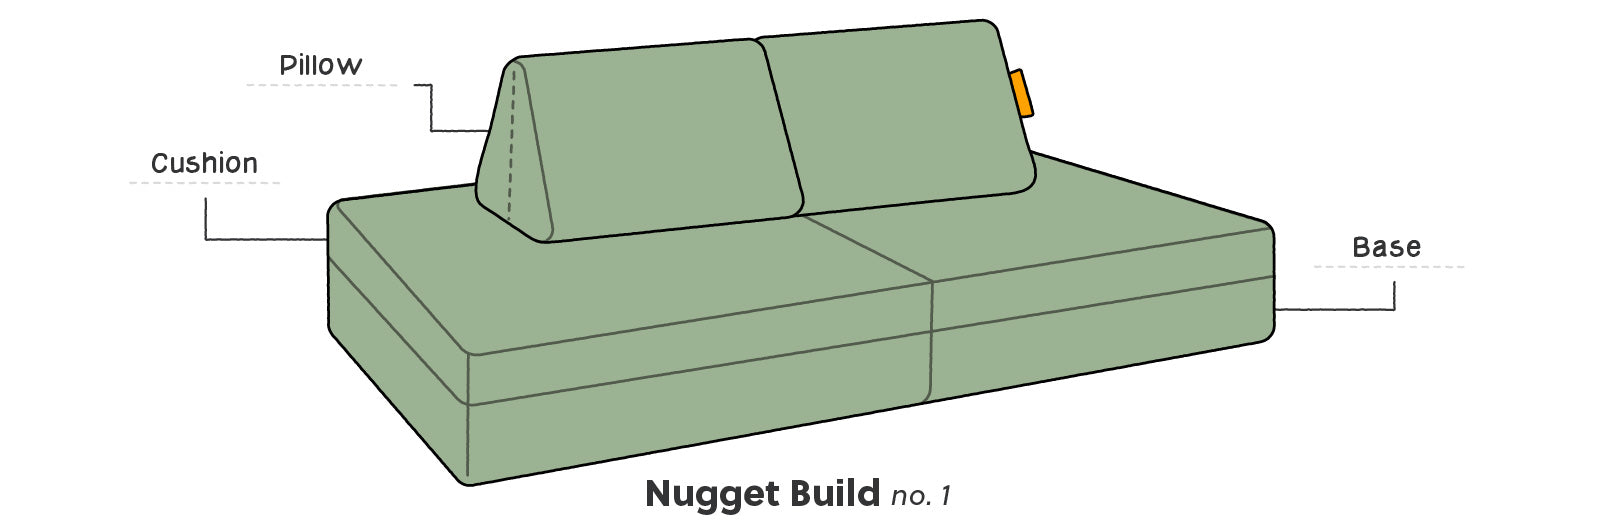 Illustration of Nugget build No. 1, our classic couch build